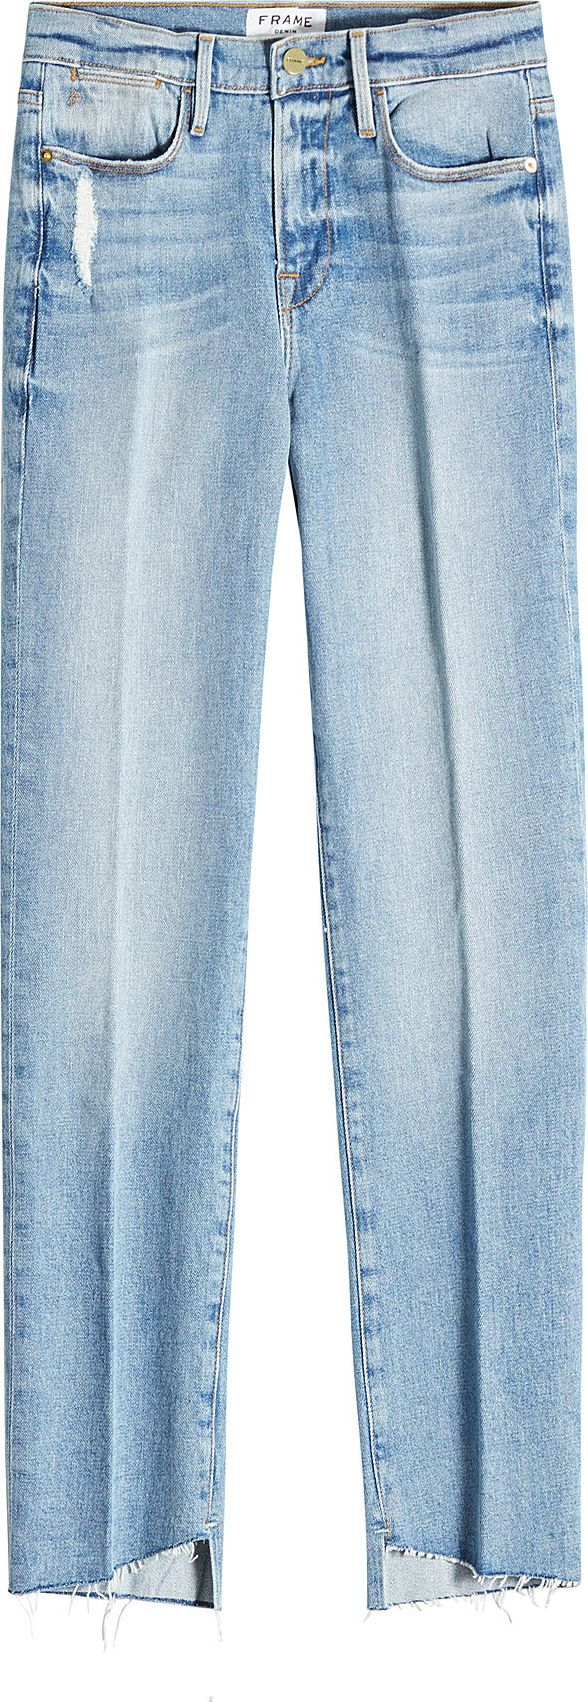 FRAME DENIM - Distressed Straight Leg Jeans with Asymmetric Hem